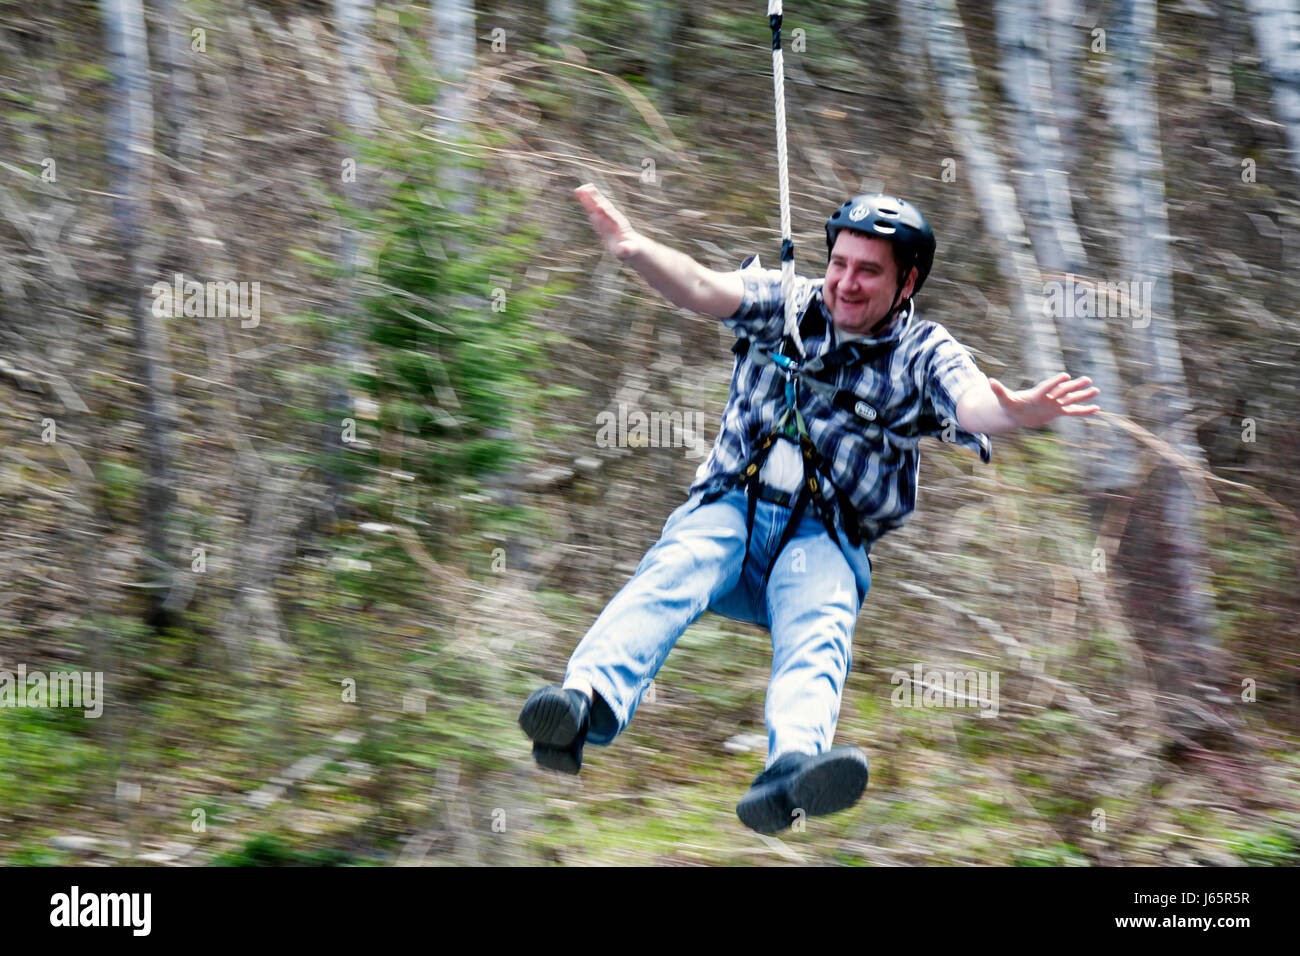 Mackinaw City Michigan Mackinac State Historic Parks Park Historic Mill Creek Discovery Park man zip line sliding - Stock Image